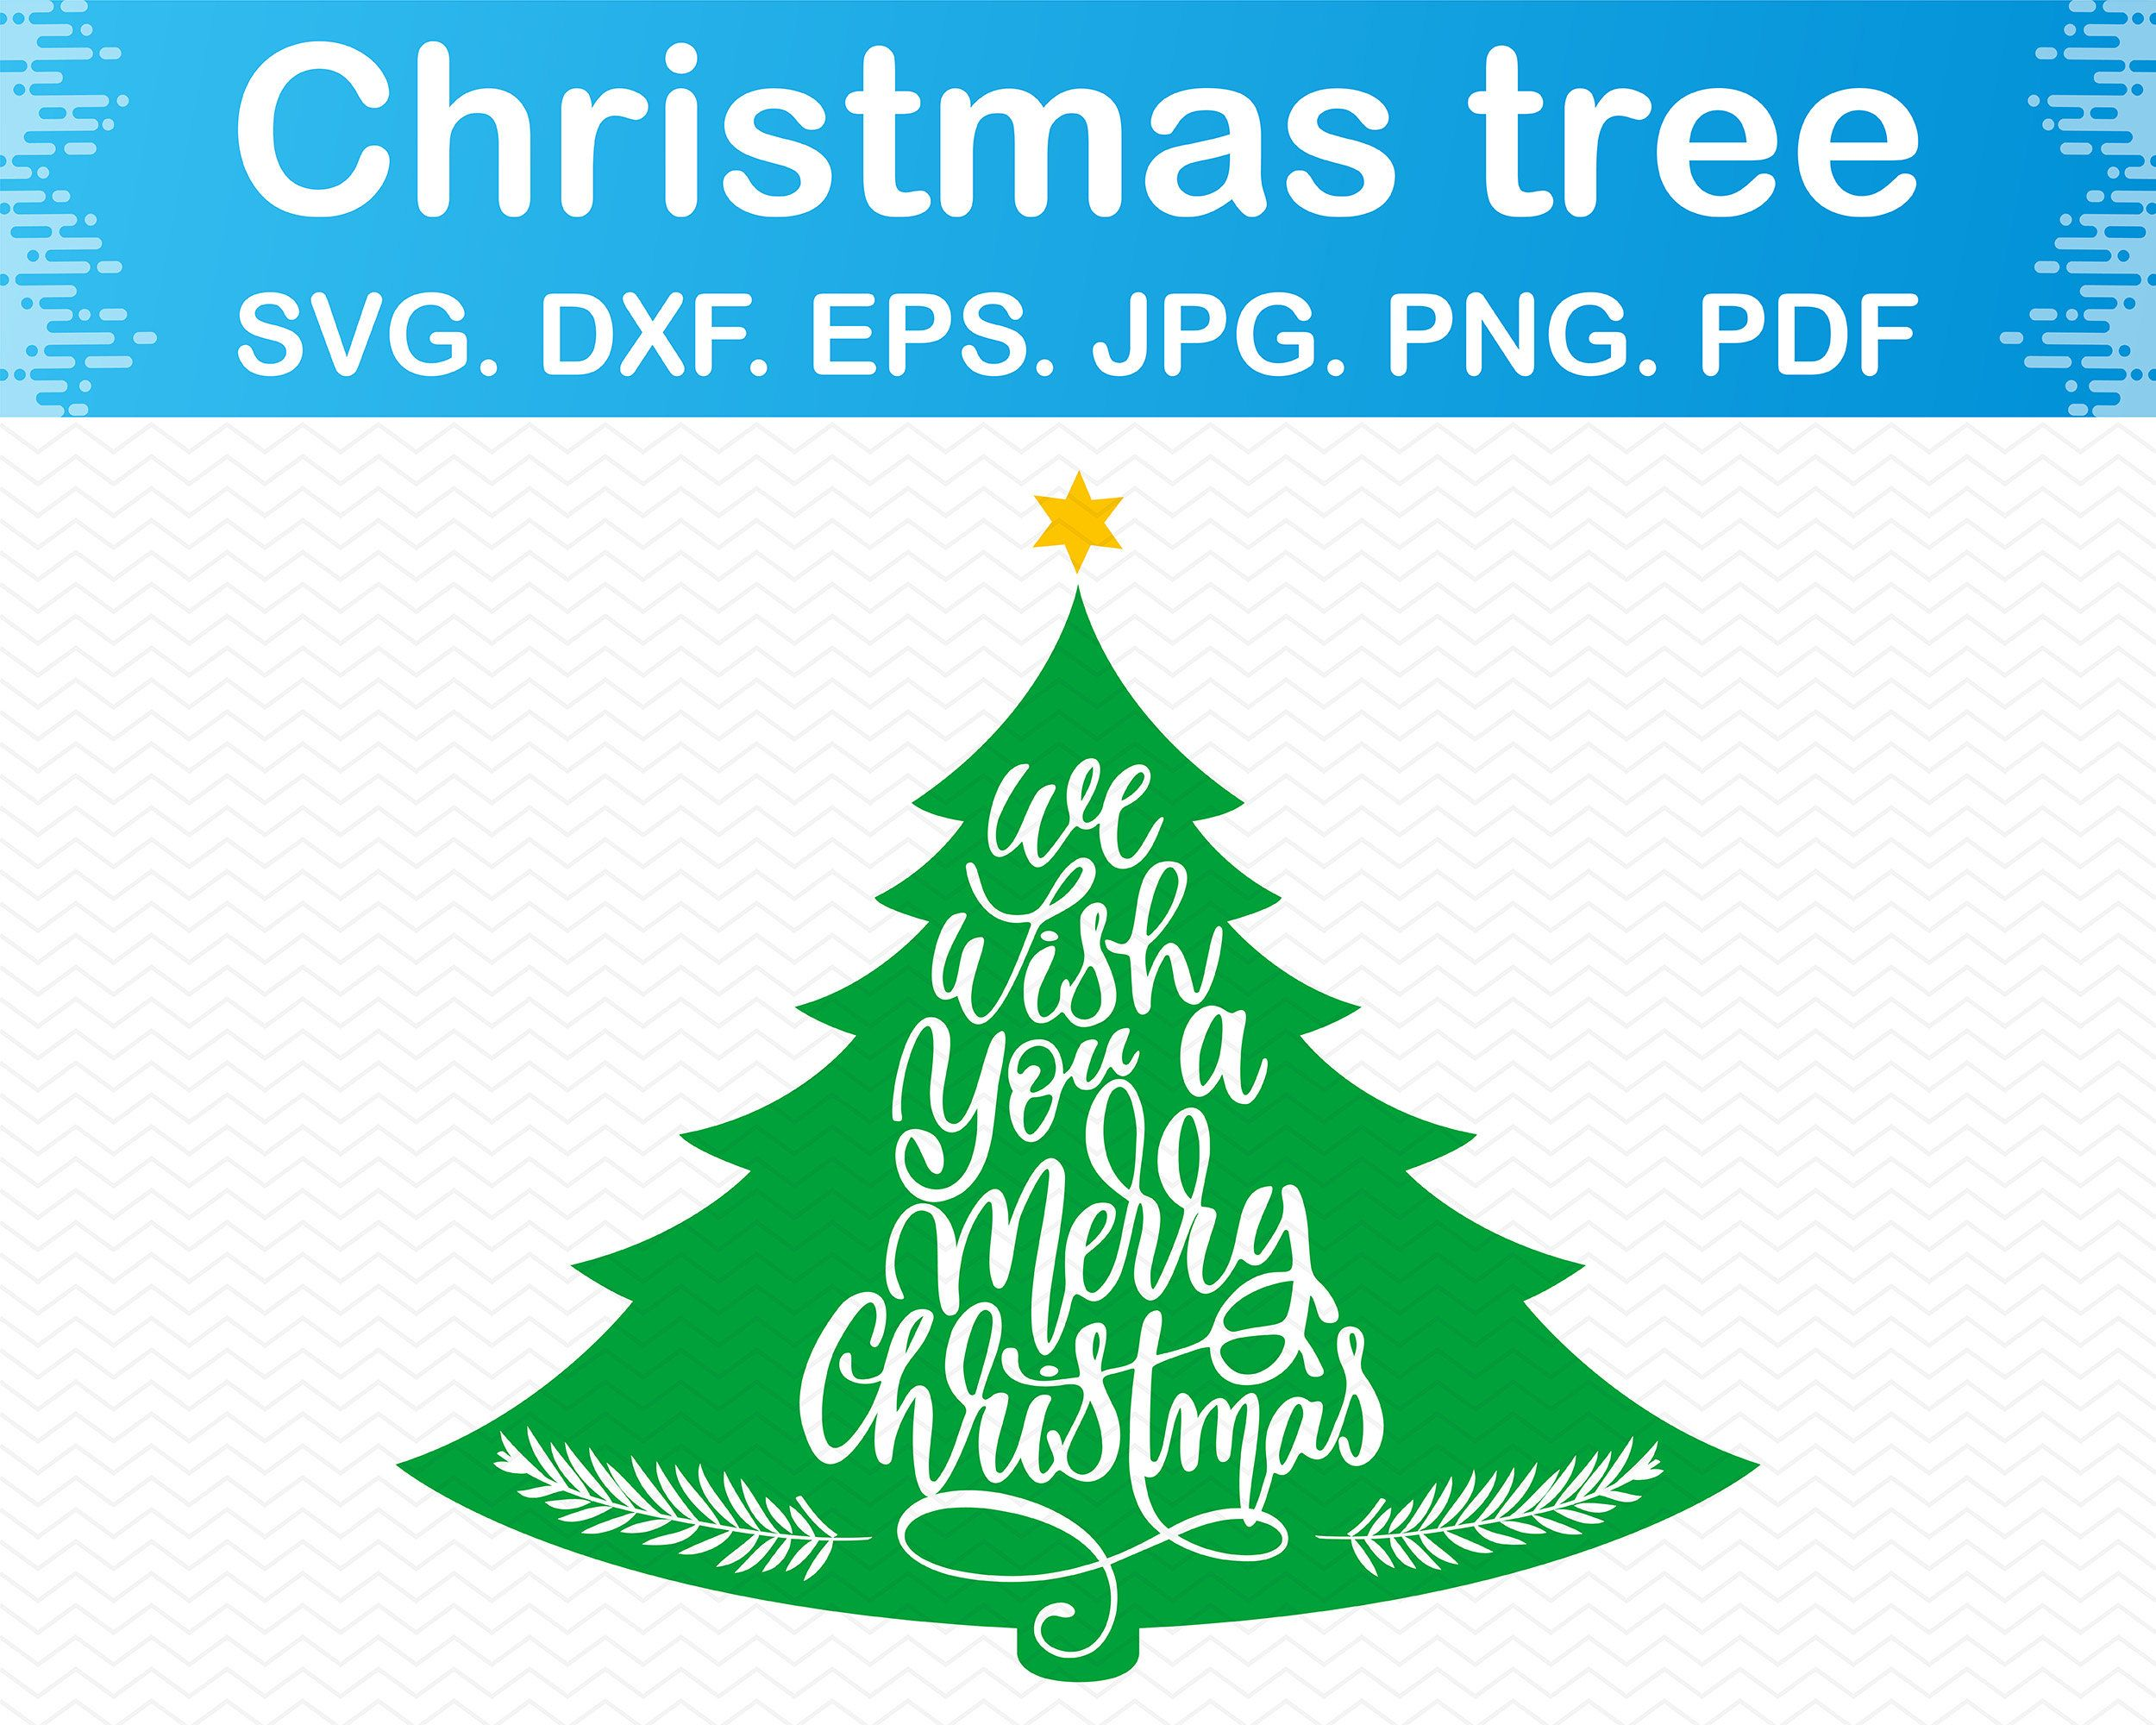 Merry Christmas Tree Svg Merry Christmas Trees Png Merry Etsy In 2020 Tree Svg Christmas Clipart Christmas Svg